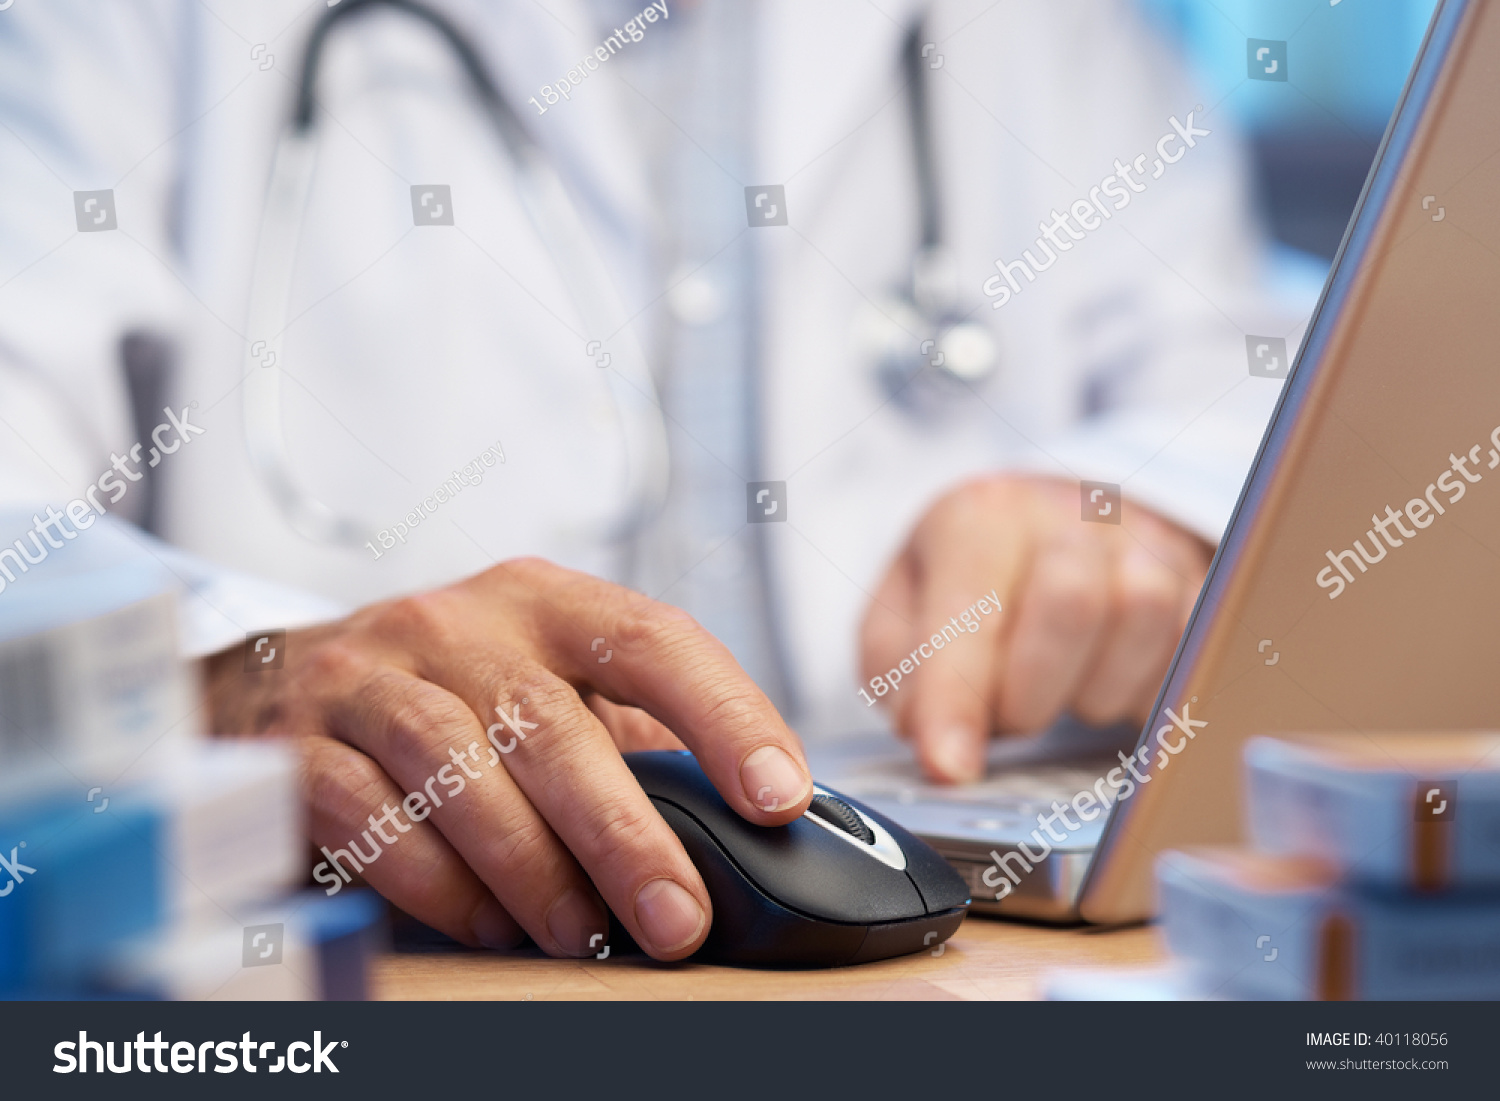 how to get a prescription online doctor